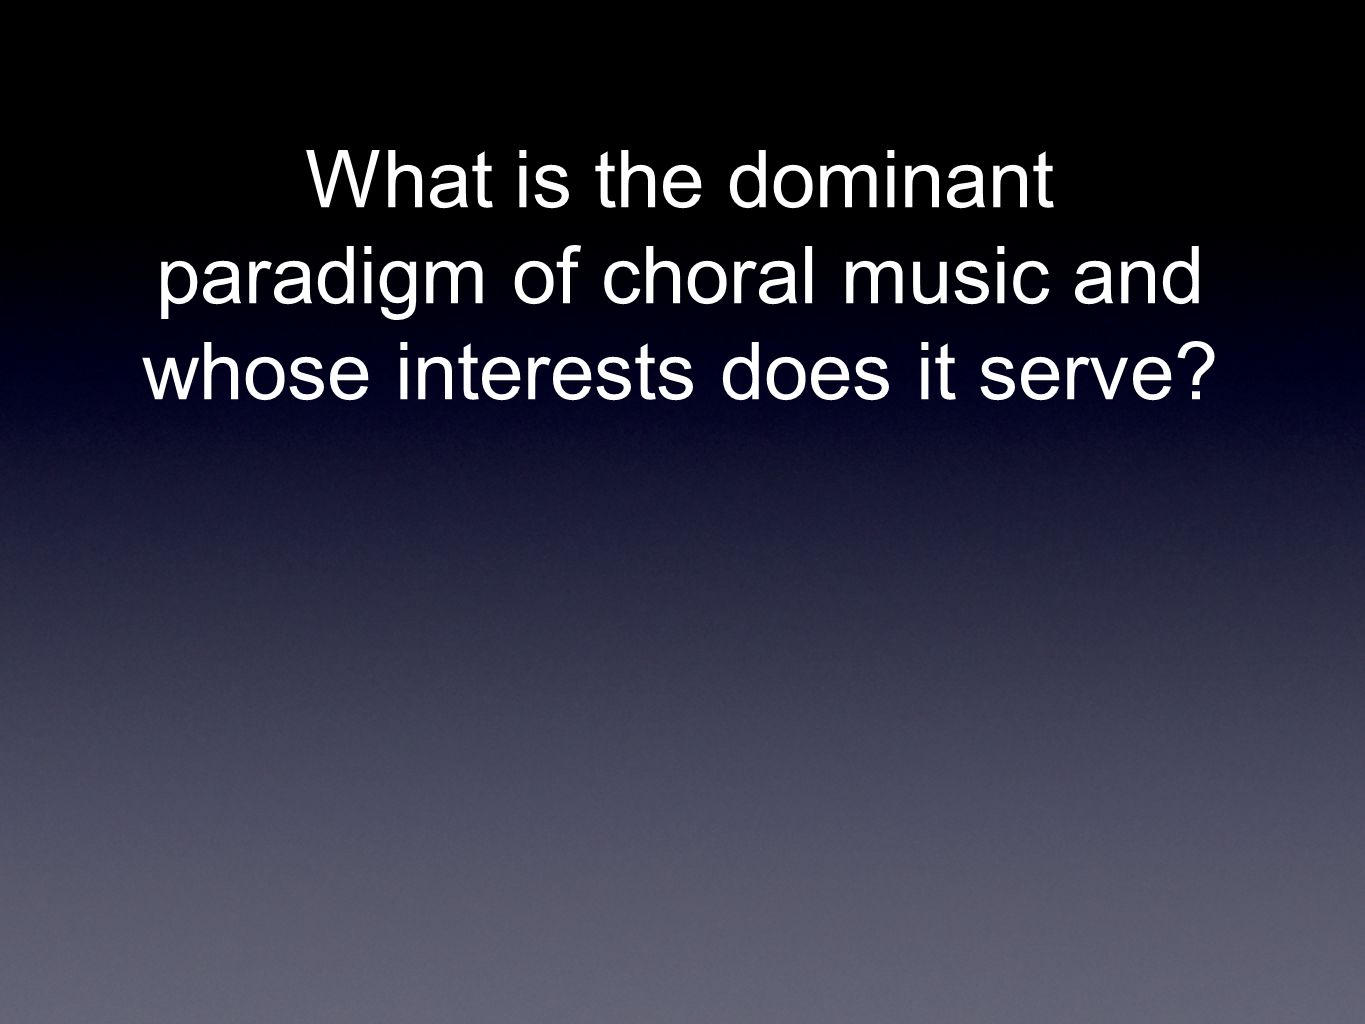 What is the dominant paradigm of choral music and whose interests does it serve